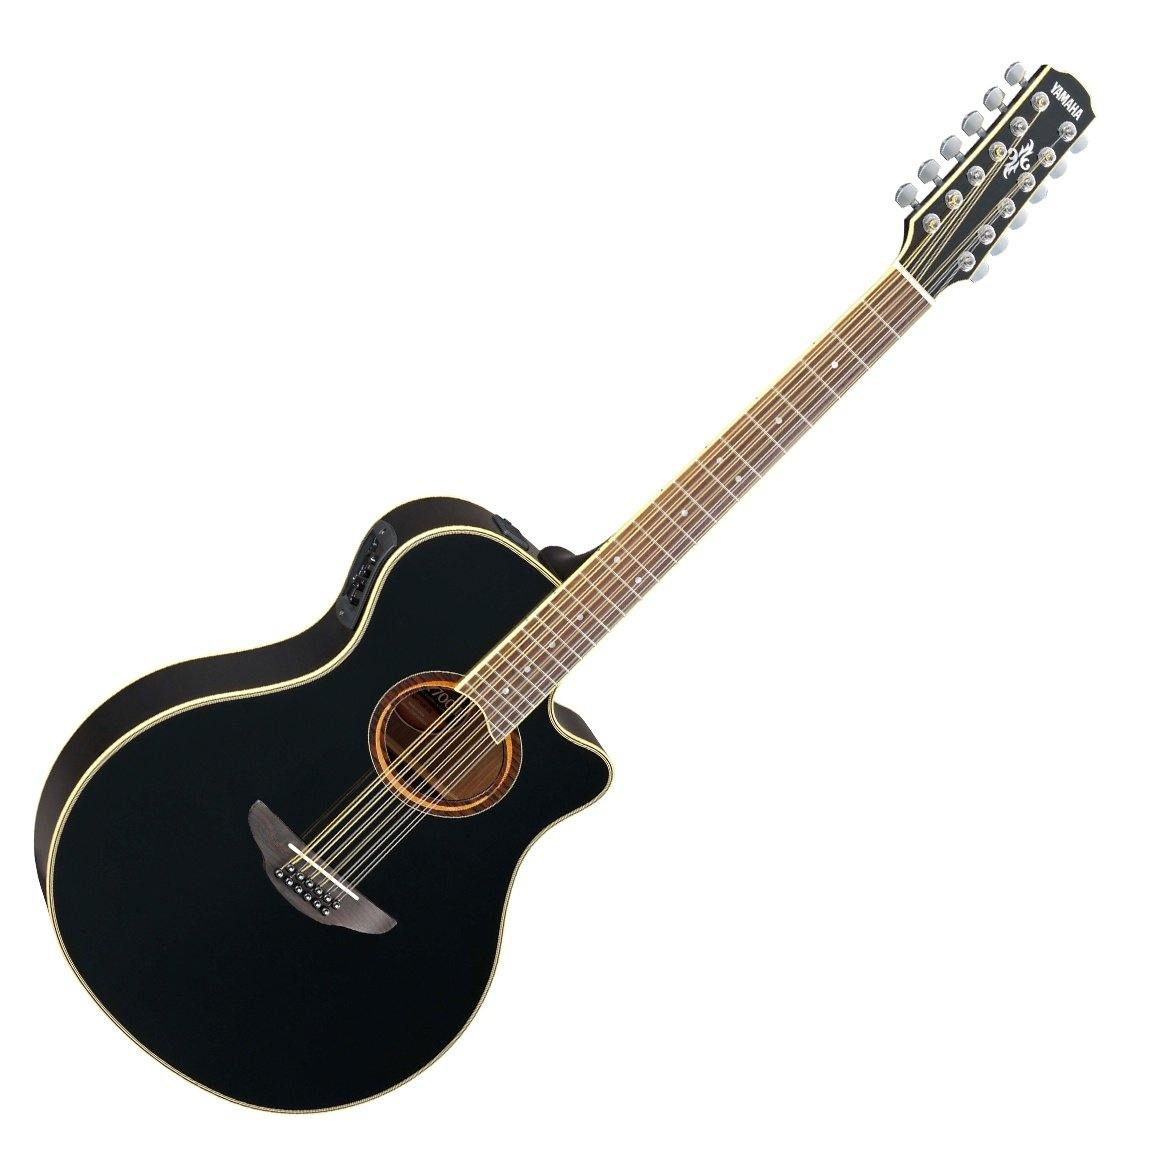 Yamaha APX700II-12 12 String Acoustic Guitar - Black - ICONS Shop